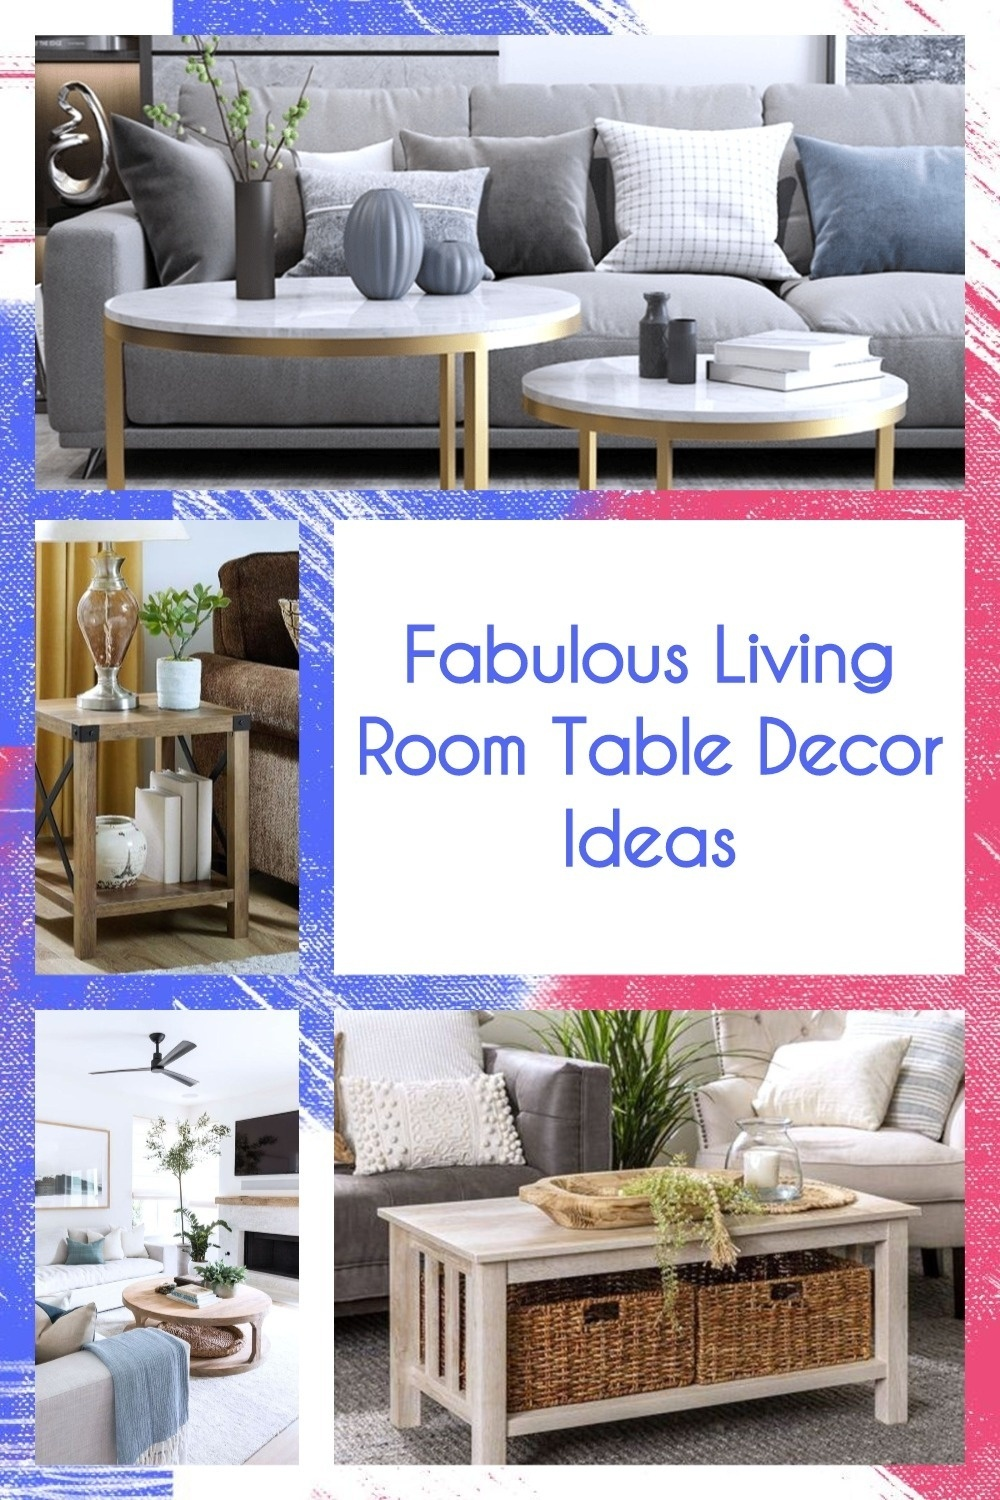 Fabulous Living Room Table Decor Ideas